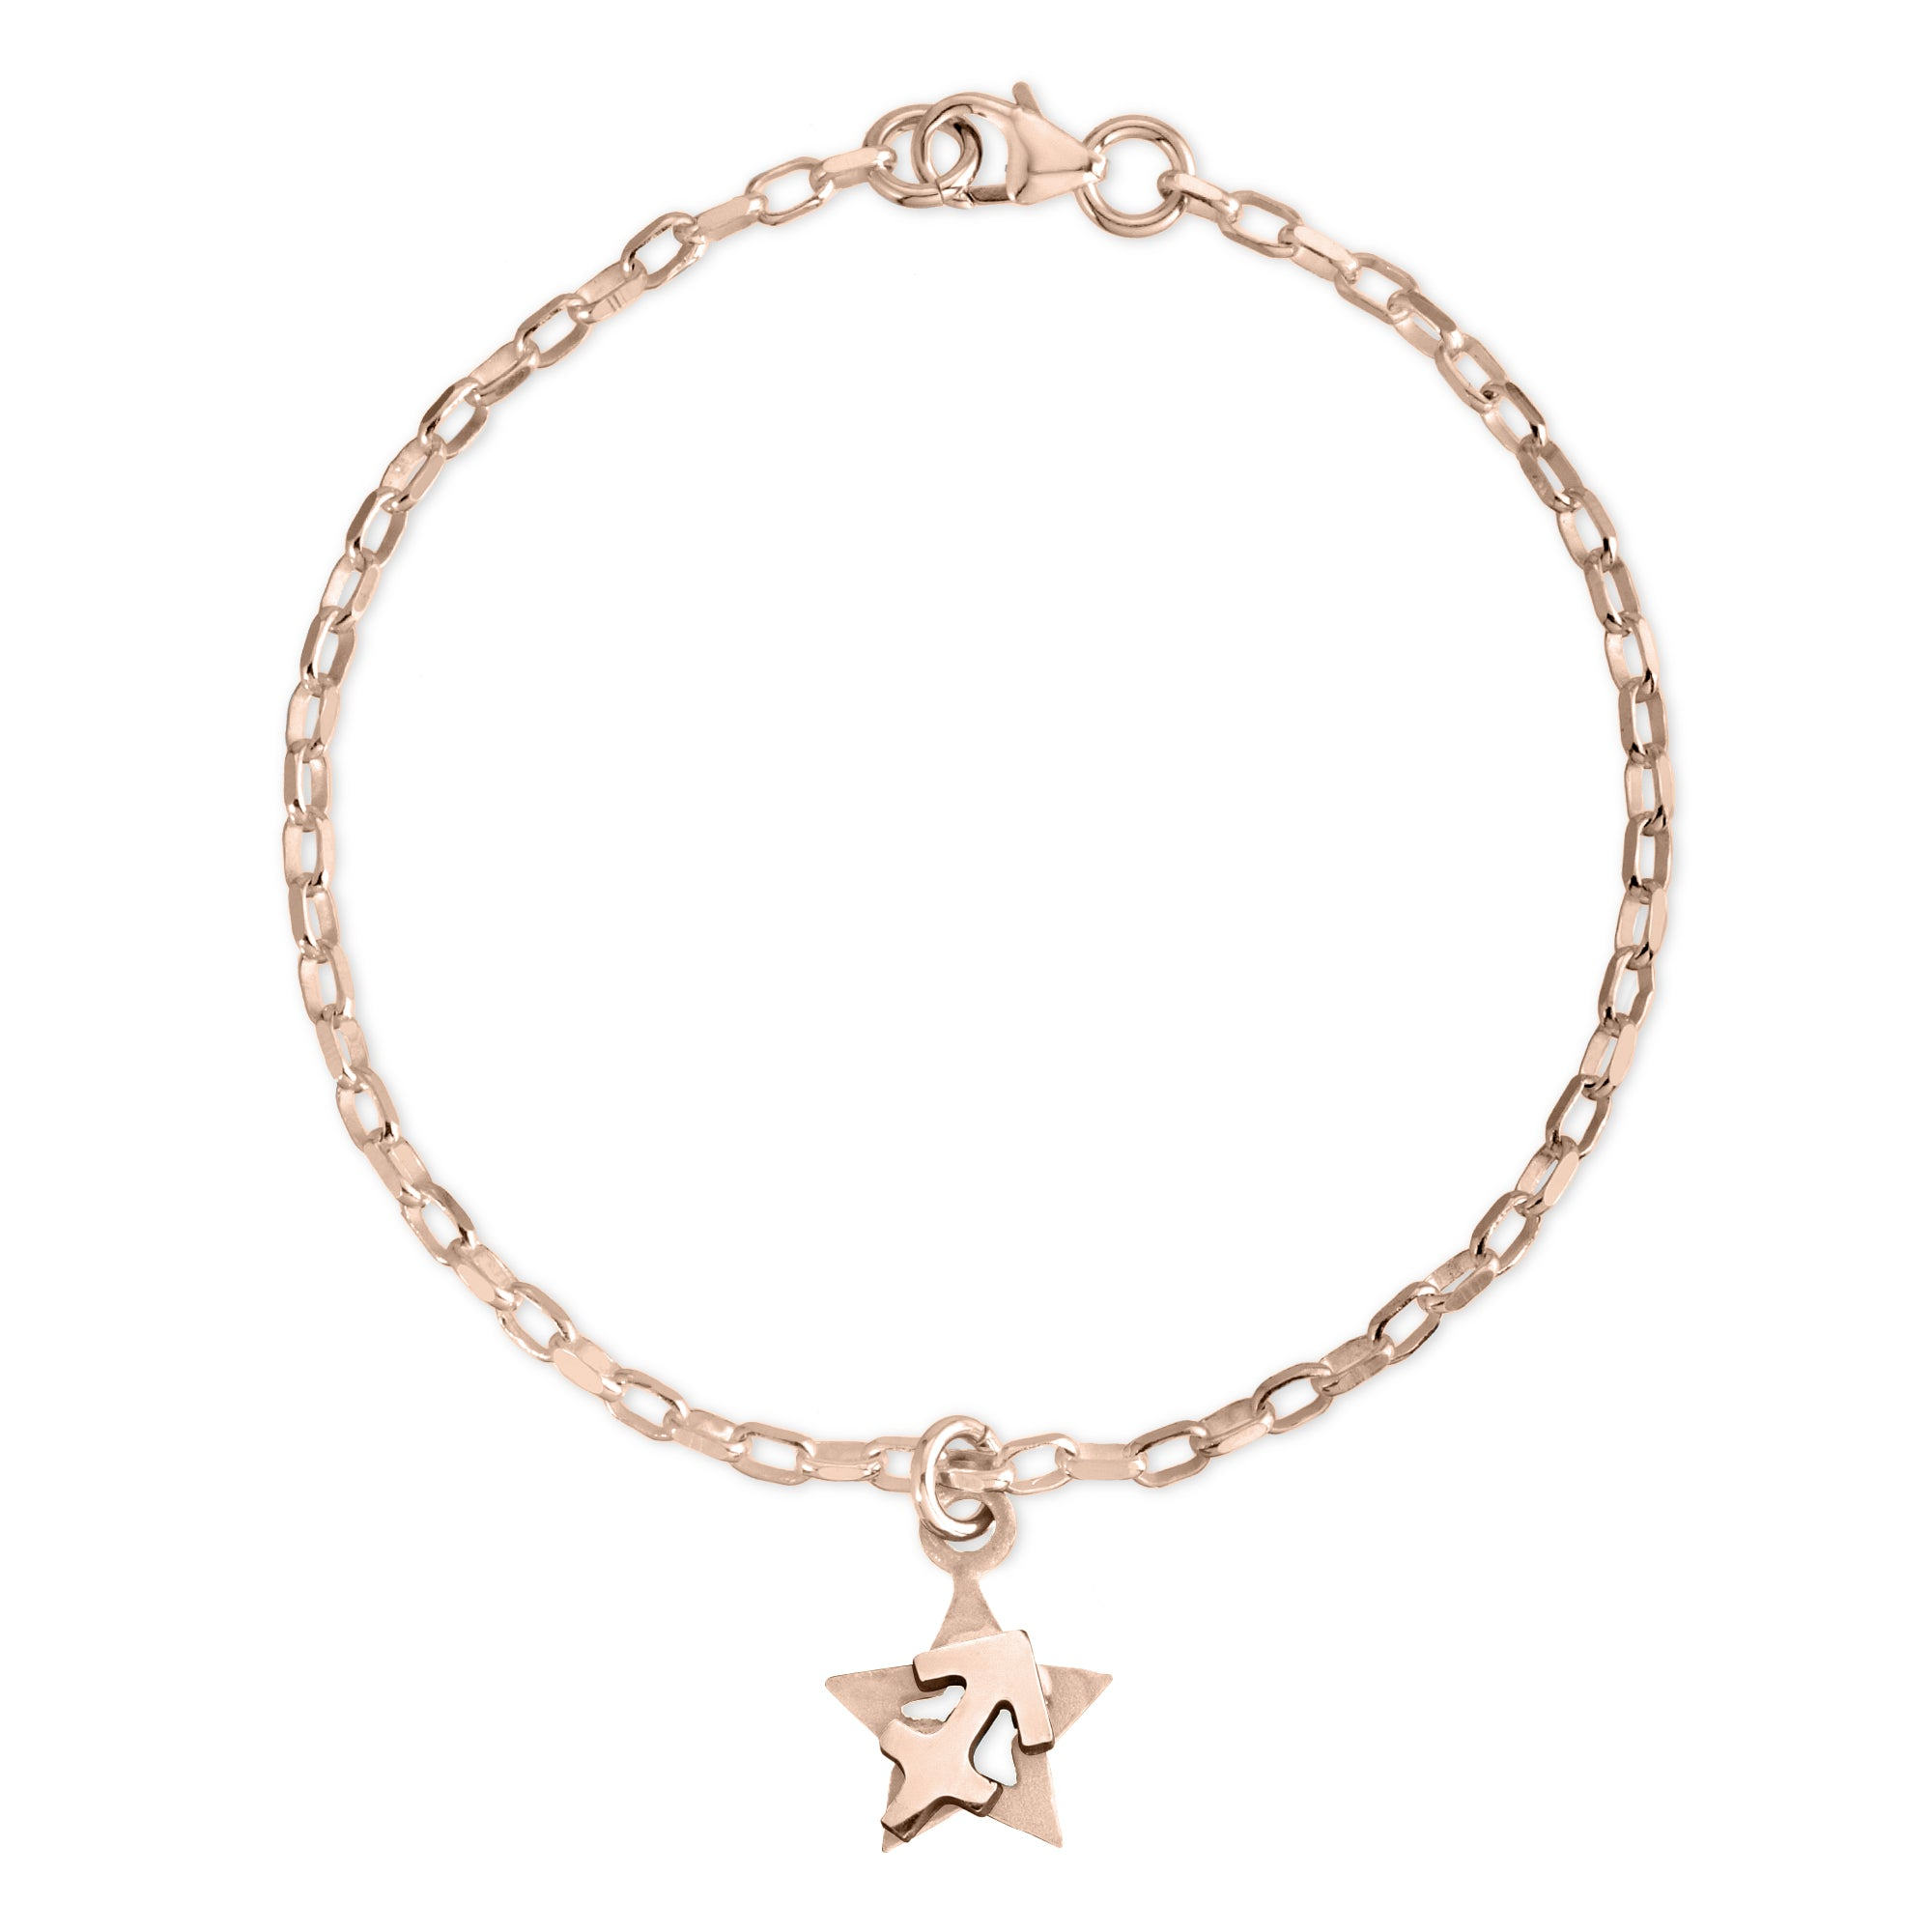 The W Brothers Sterling silver zodiac horoscope Sagittarius charm bracelet crafted to perfection in premium 925 Sterling silver, available in silver, real 18k gold or rose gold layering. Shop your star-signs at thewbros.com